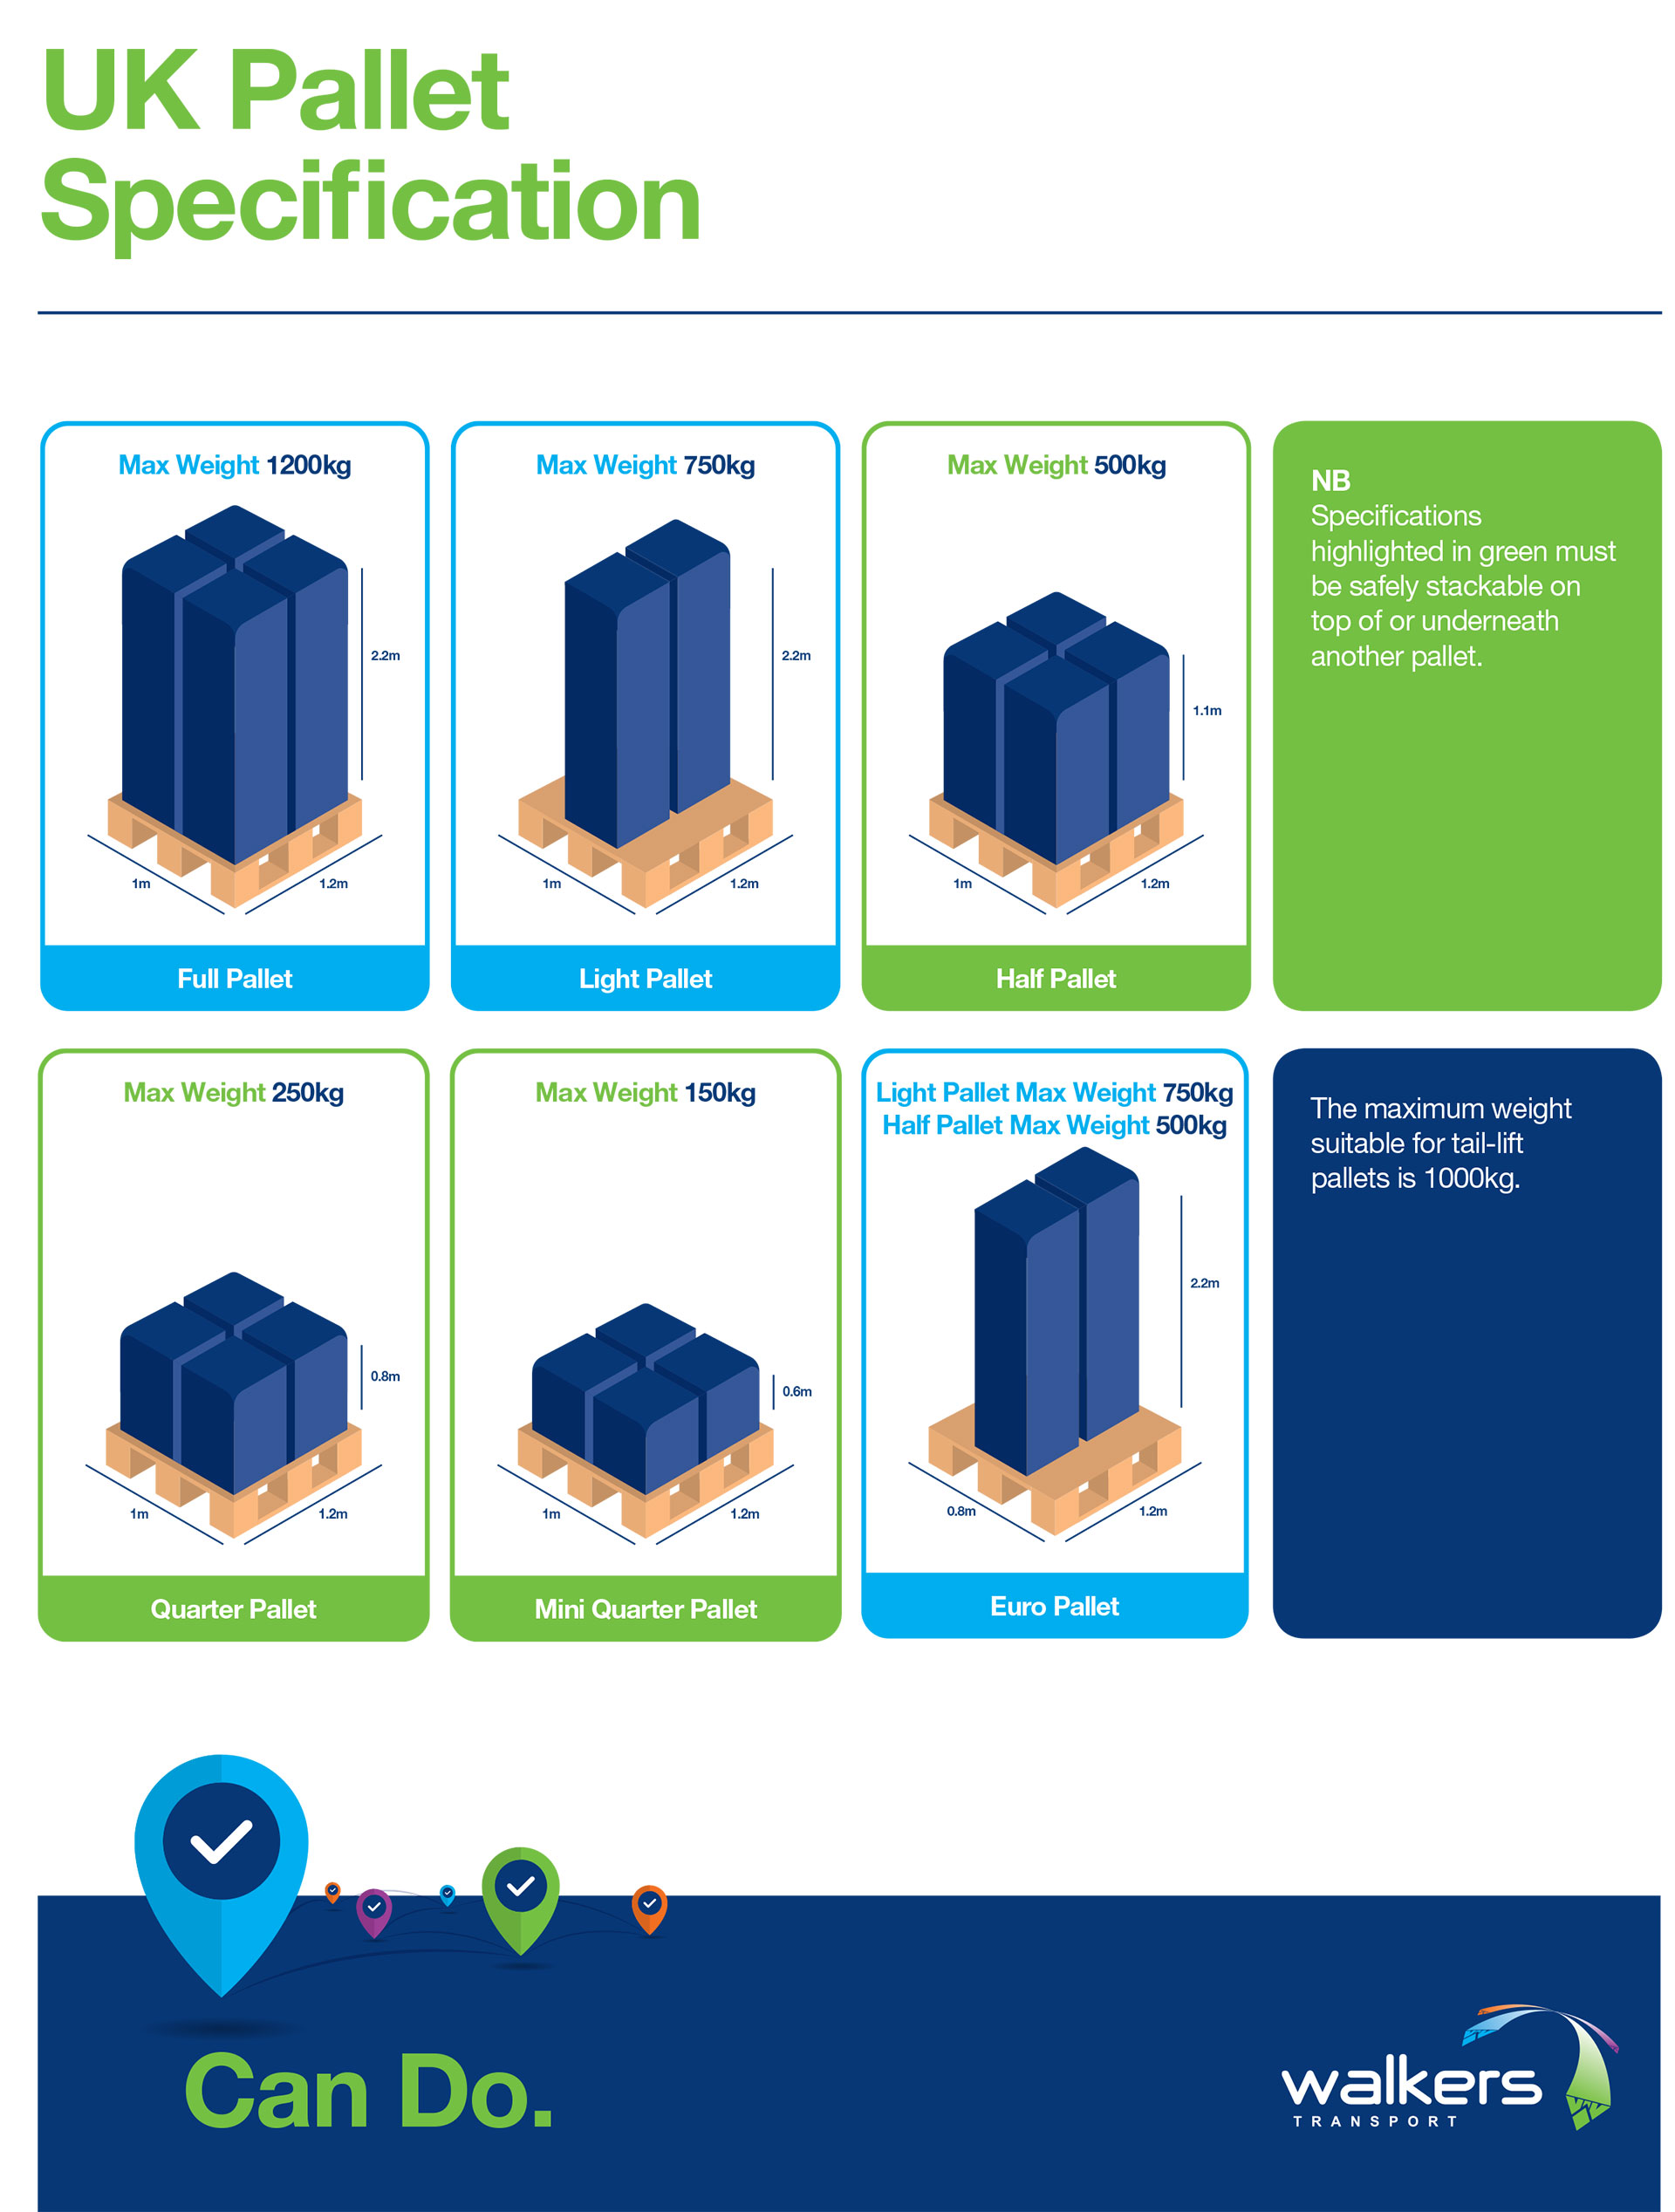 Walkers Transport UK pallet sizes and weight specifications